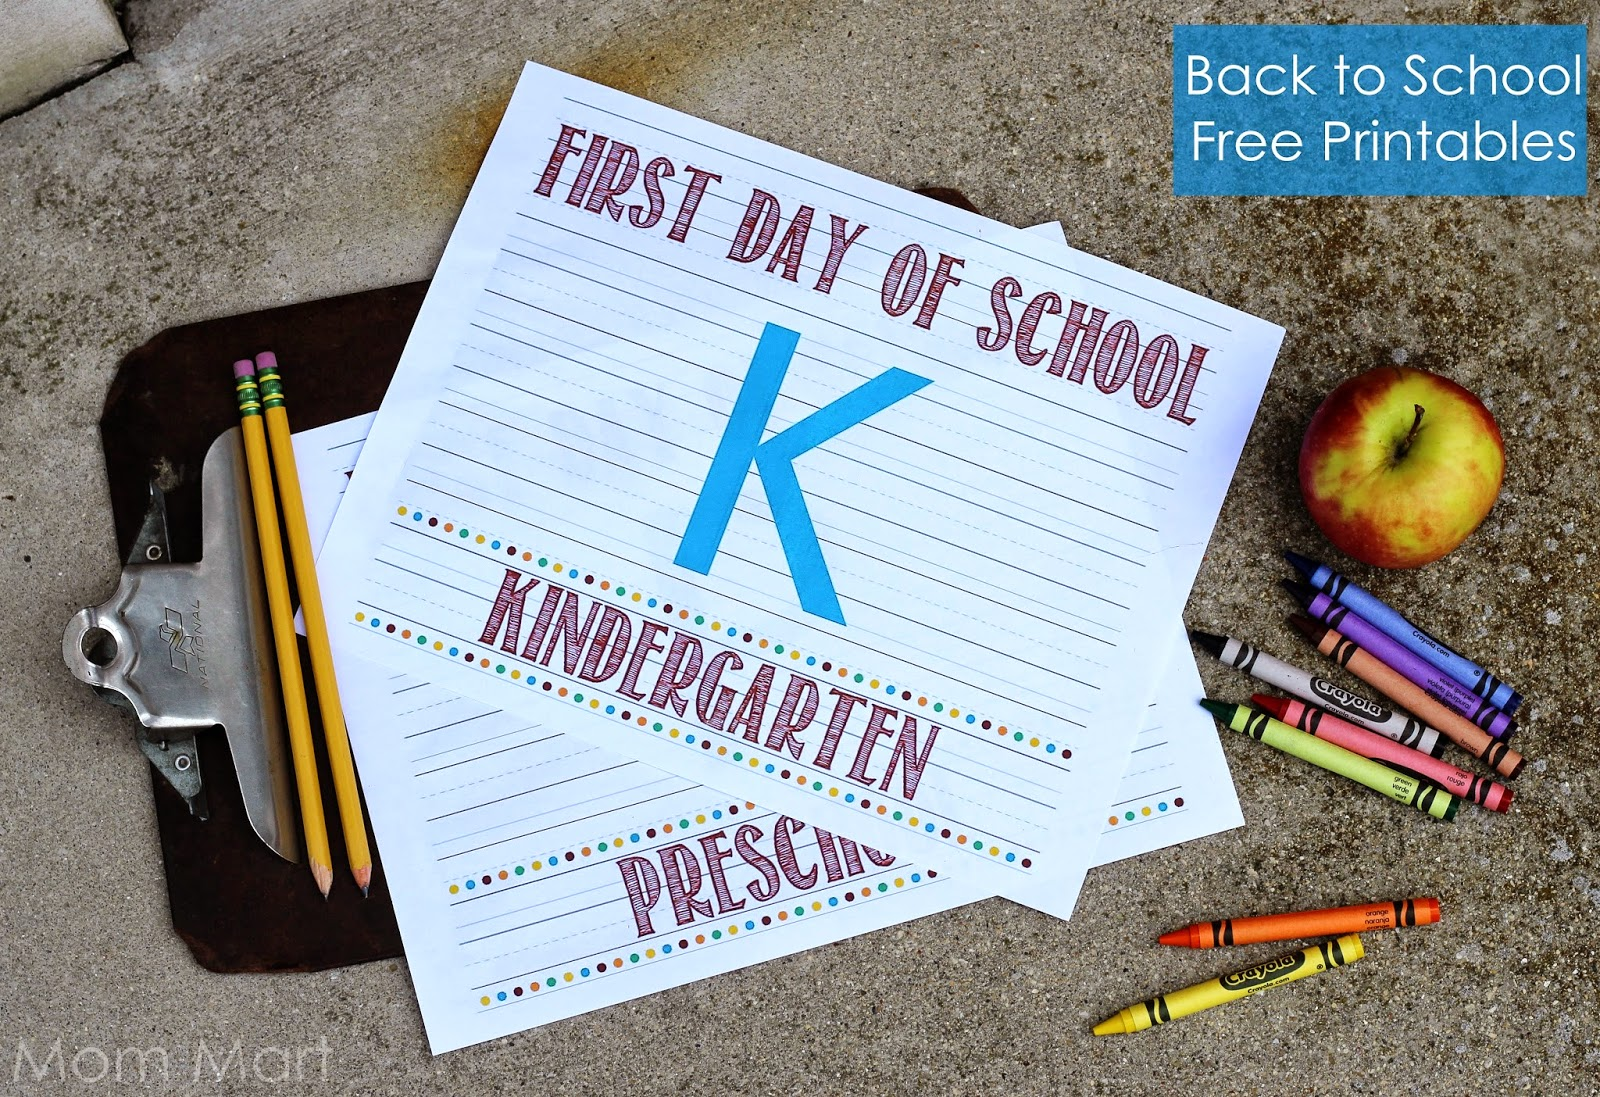 Free Printables Back to School Preschool through Eighth Grade Photo Cards and Interview Sheets